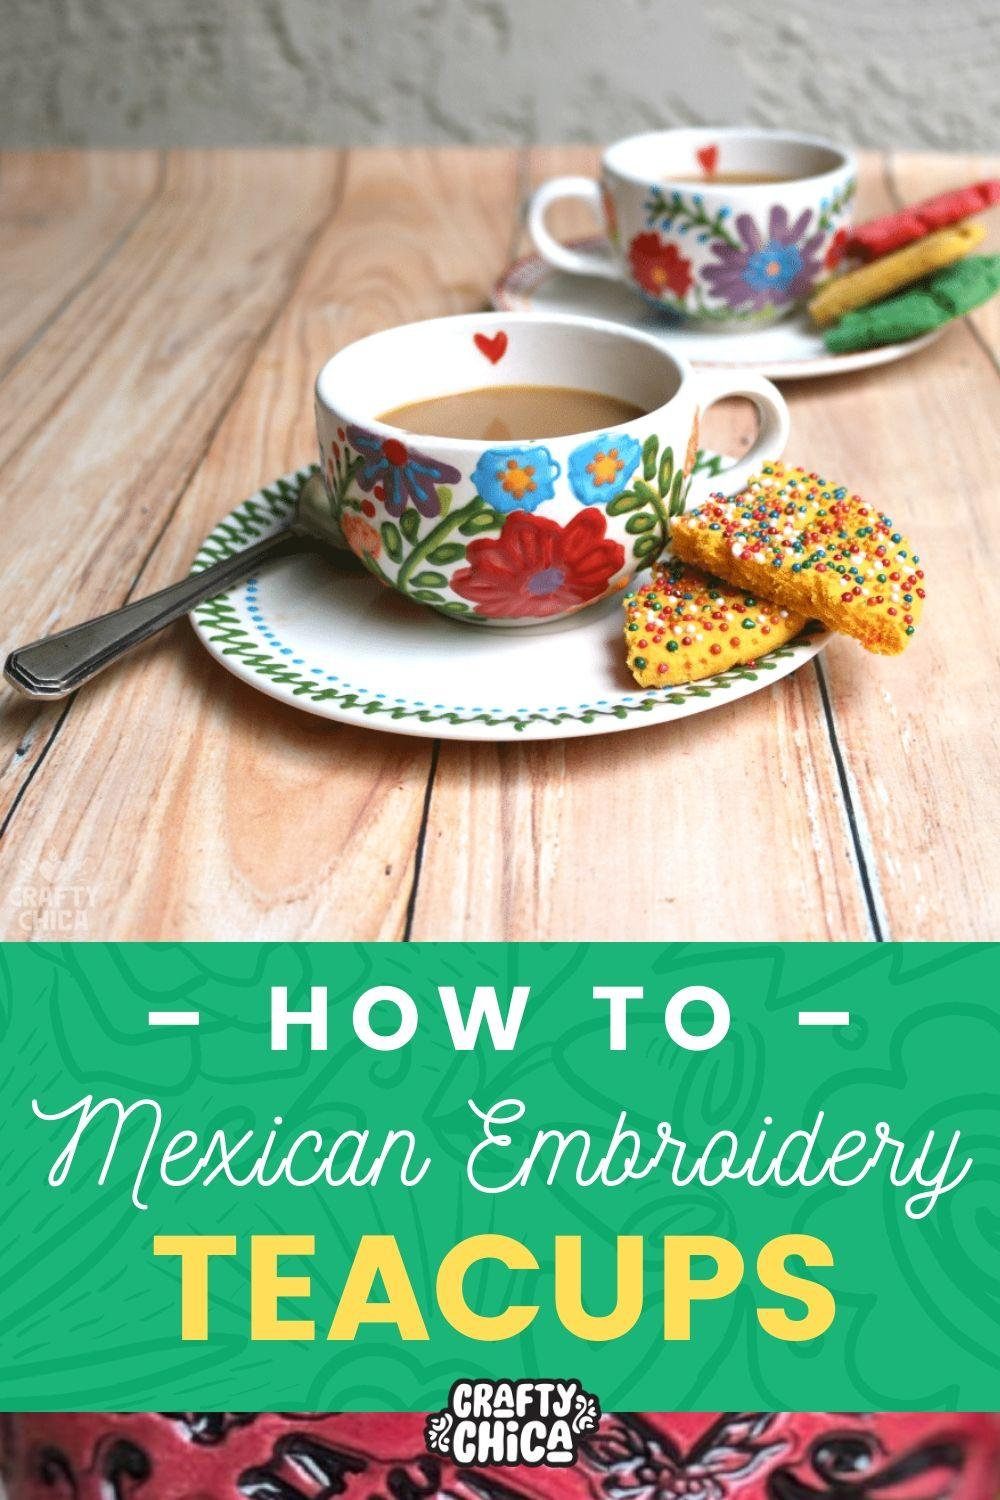 How to make Mexican embroidery teacups #craftychica